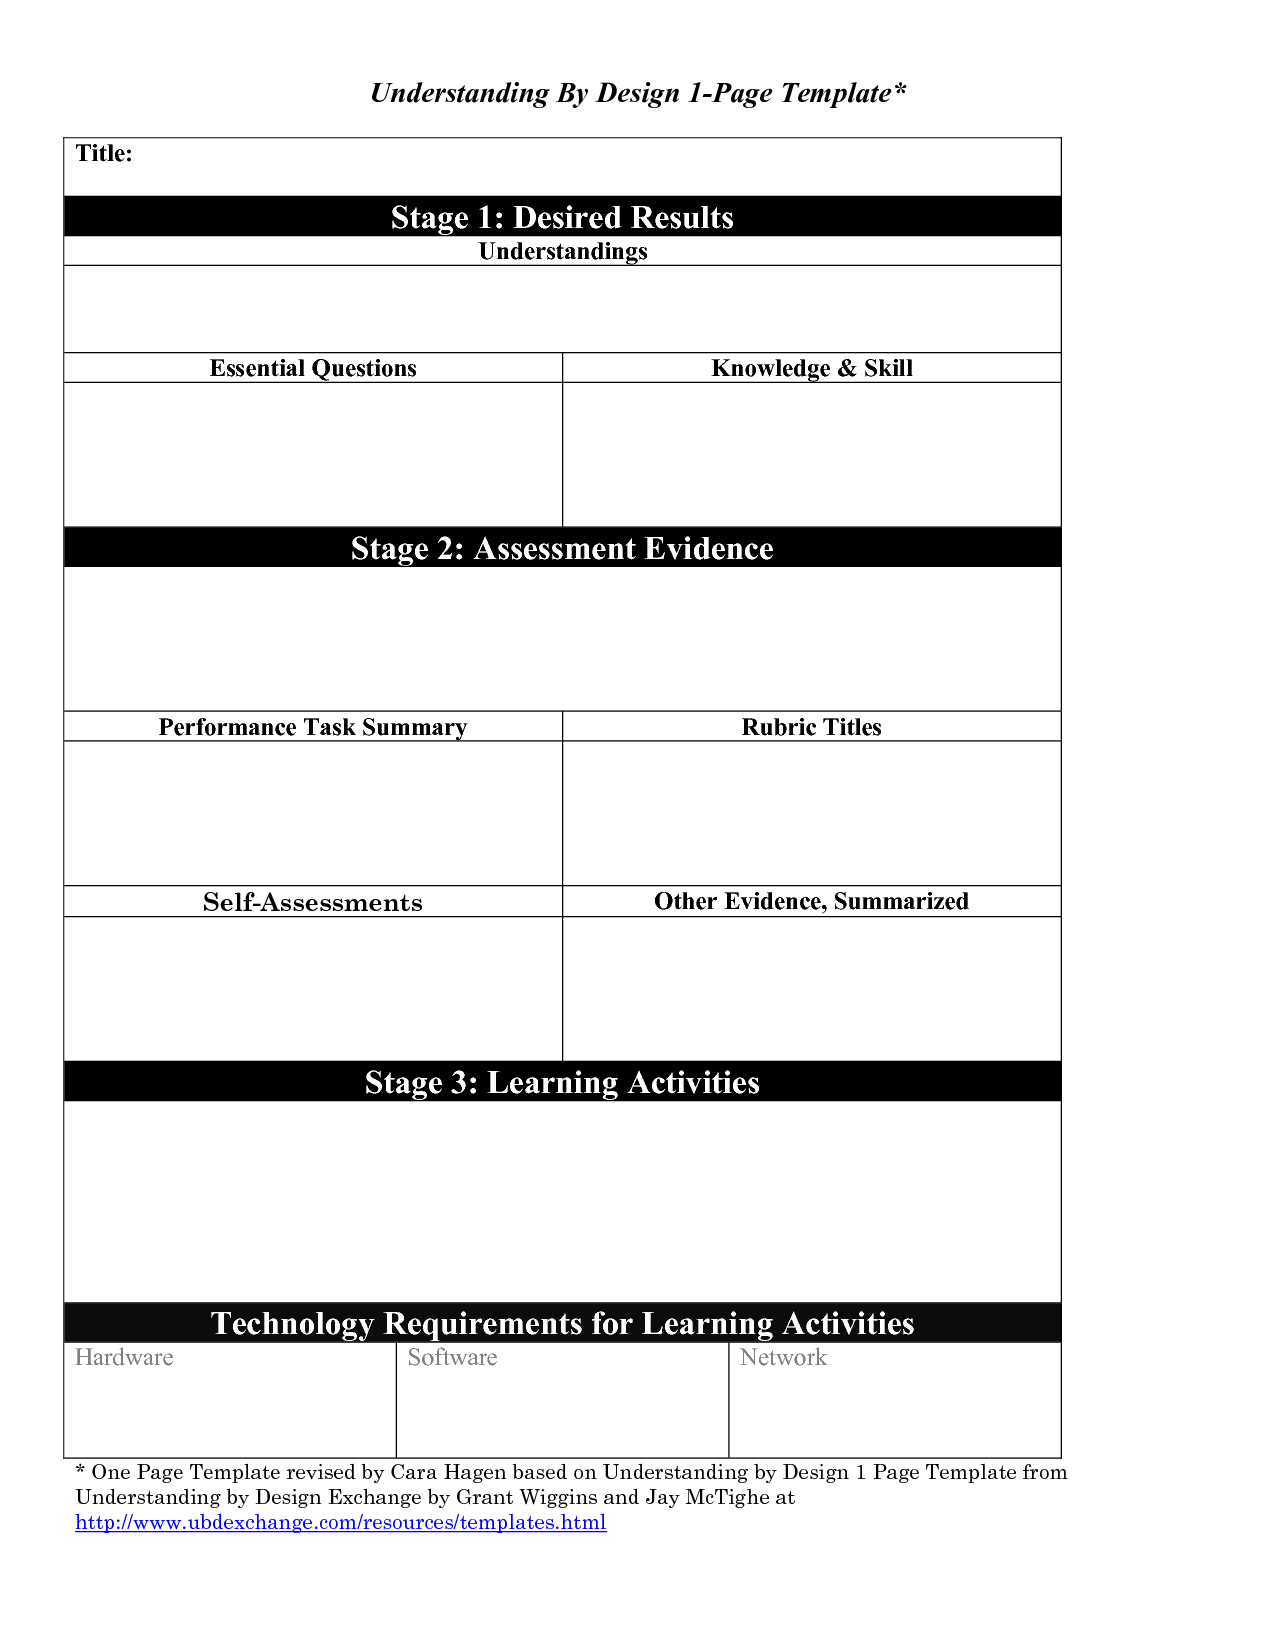 Understanding by design 1 page template doc understanding - Backwards design lesson plan examples ...